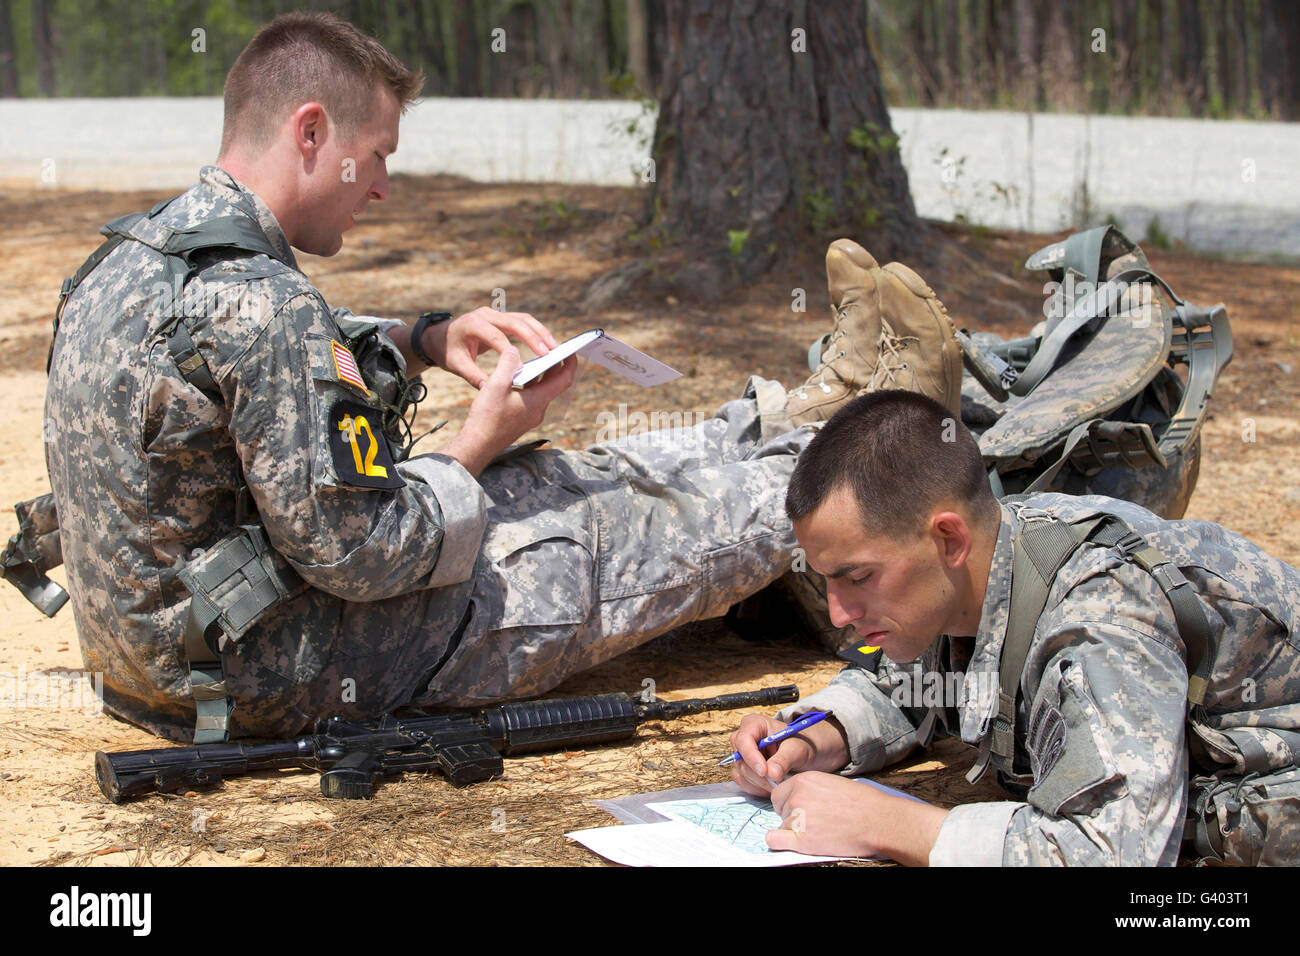 U.S. Army Rangers map out their route for day land navigation. - Stock Image